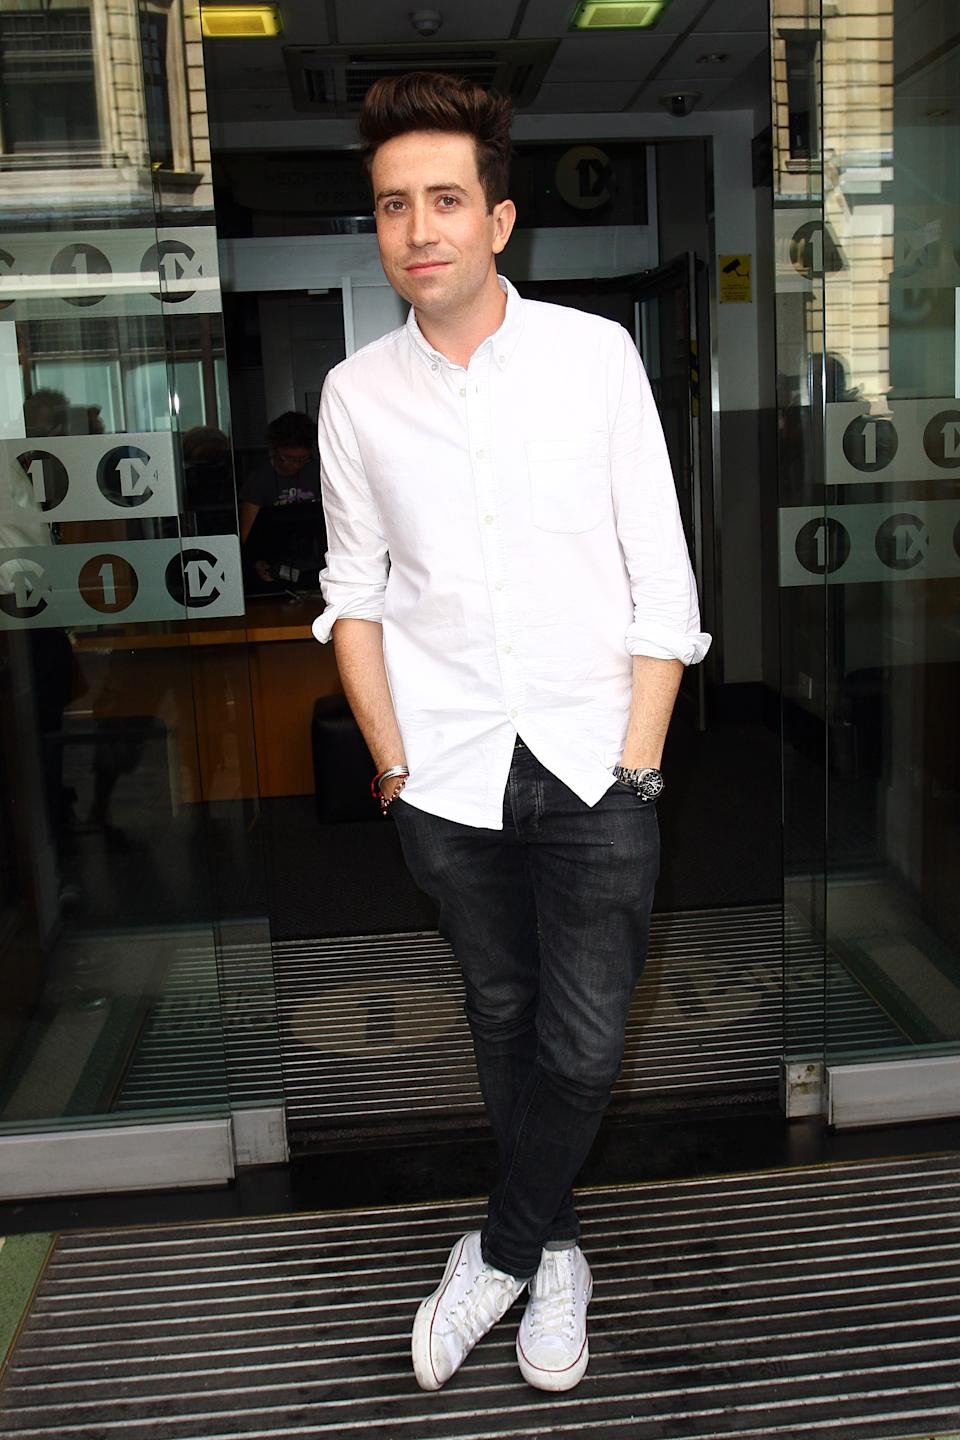 LONDON, UNITED KINGDOM - JULY 11: Nick Grimshaw seen arriving at BBC Radio One after its announced that he'll be the new host of the Breakfast Show on July 11, 2012 in London, England. (Photo by Neil Mockford/FilmMagic)